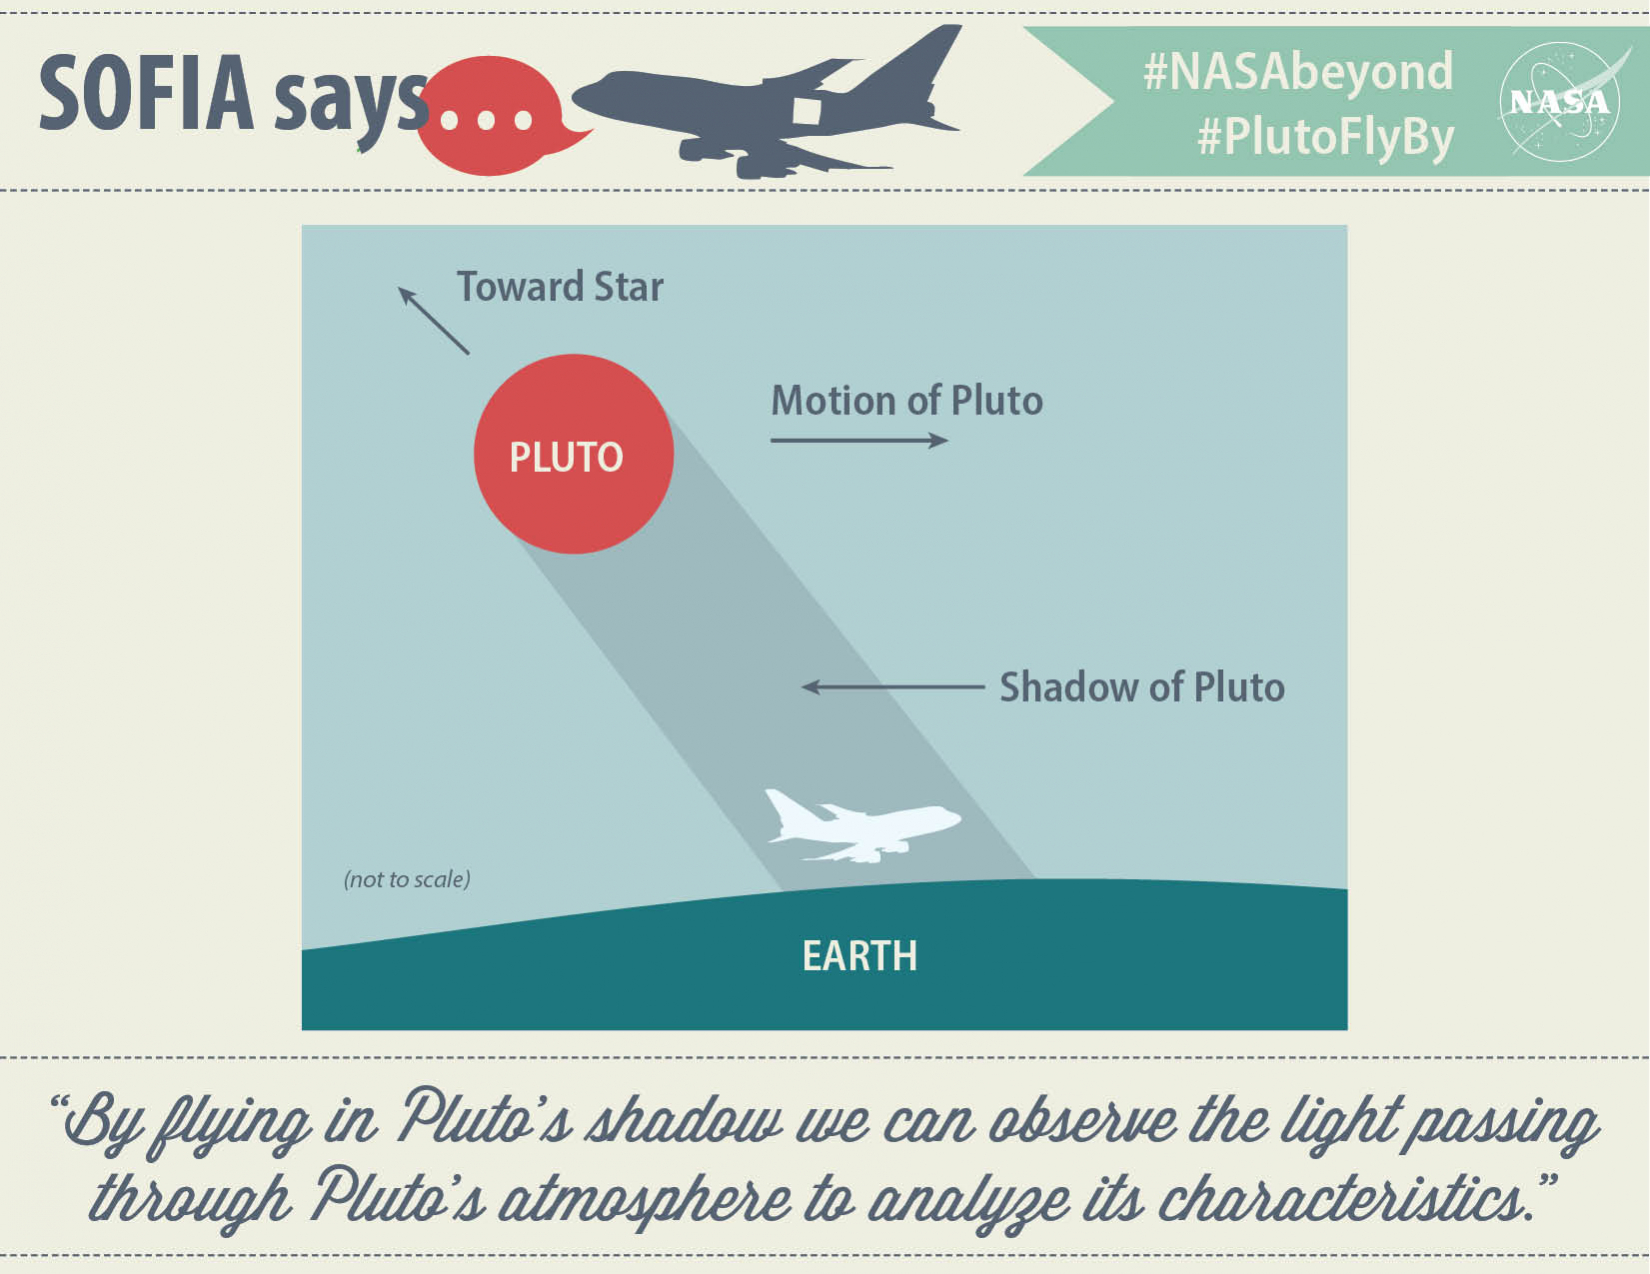 """SOFIA says, """"By flying in Pluto's shadow we can observe the light passing through Pluto's atmosphere to analyze its characteristics."""""""